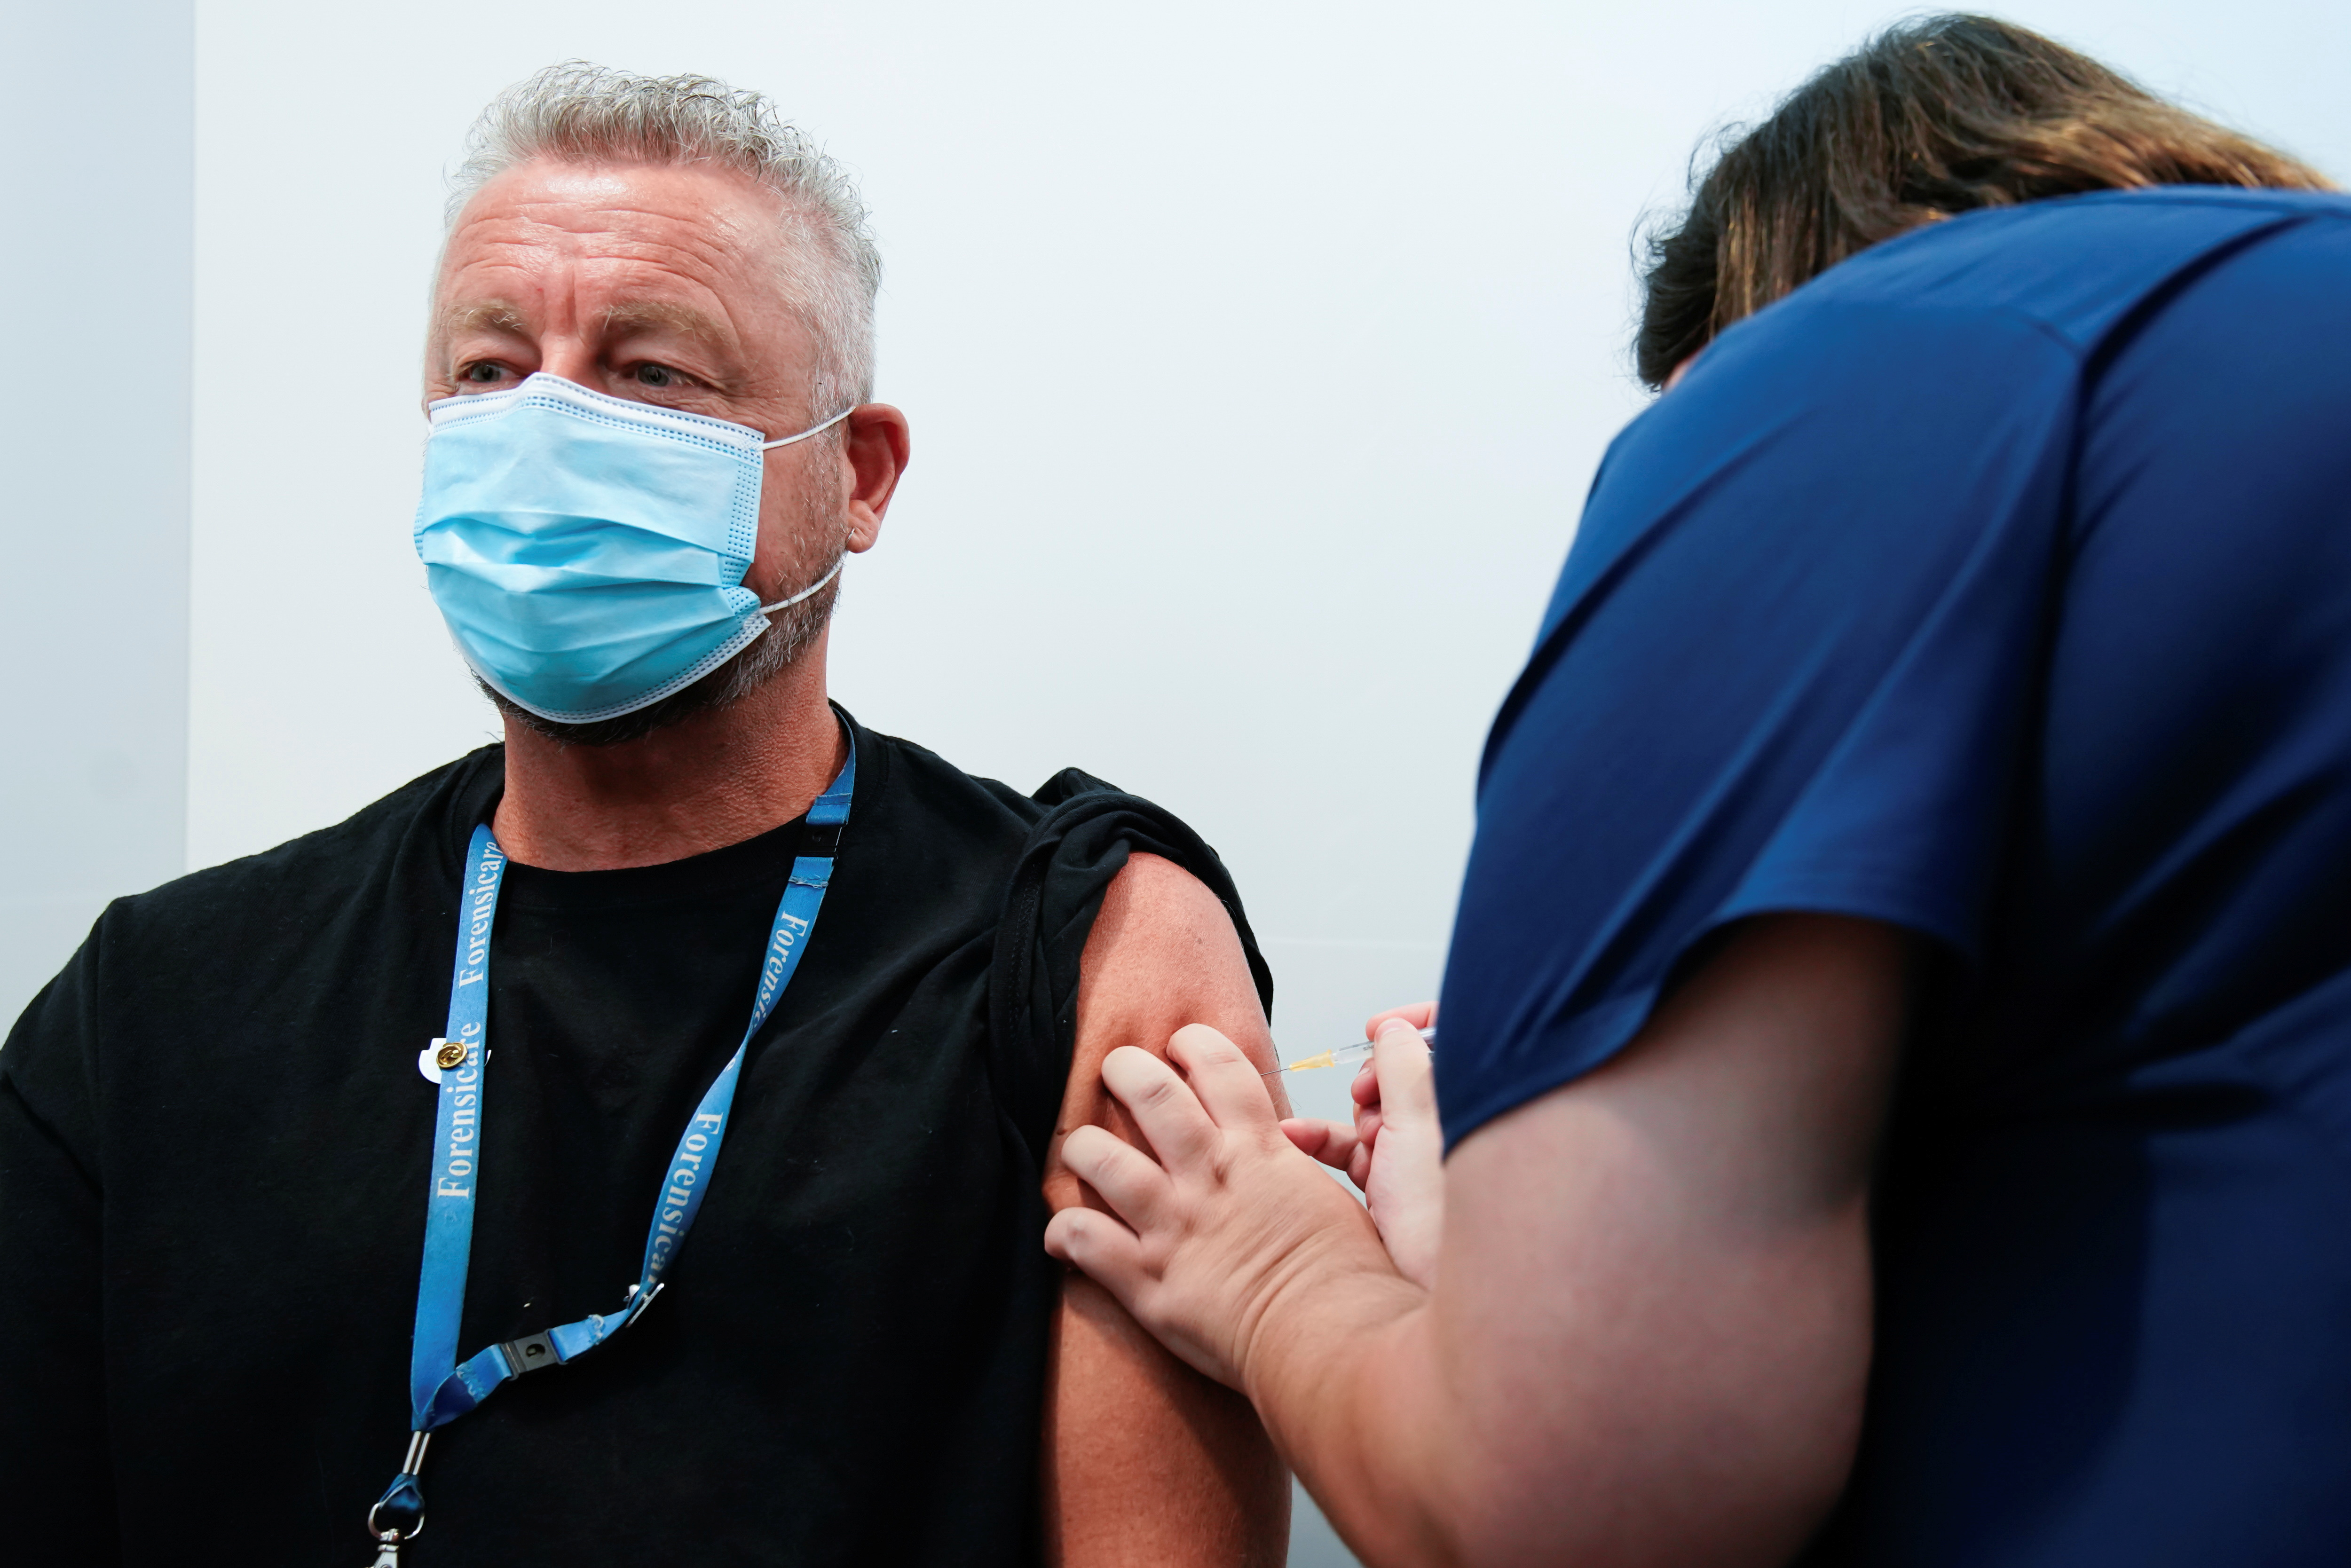 A healthcare professional administers a dose of the Pfizer coronavirus disease (COVID-19) vaccine to Dr Chris Quinn as high-risk workers receive the first vaccines in the state of Victoria's rollout of the program, in Melbourne, Australia, February 22, 2021.  REUTERS/Sandra Sanders